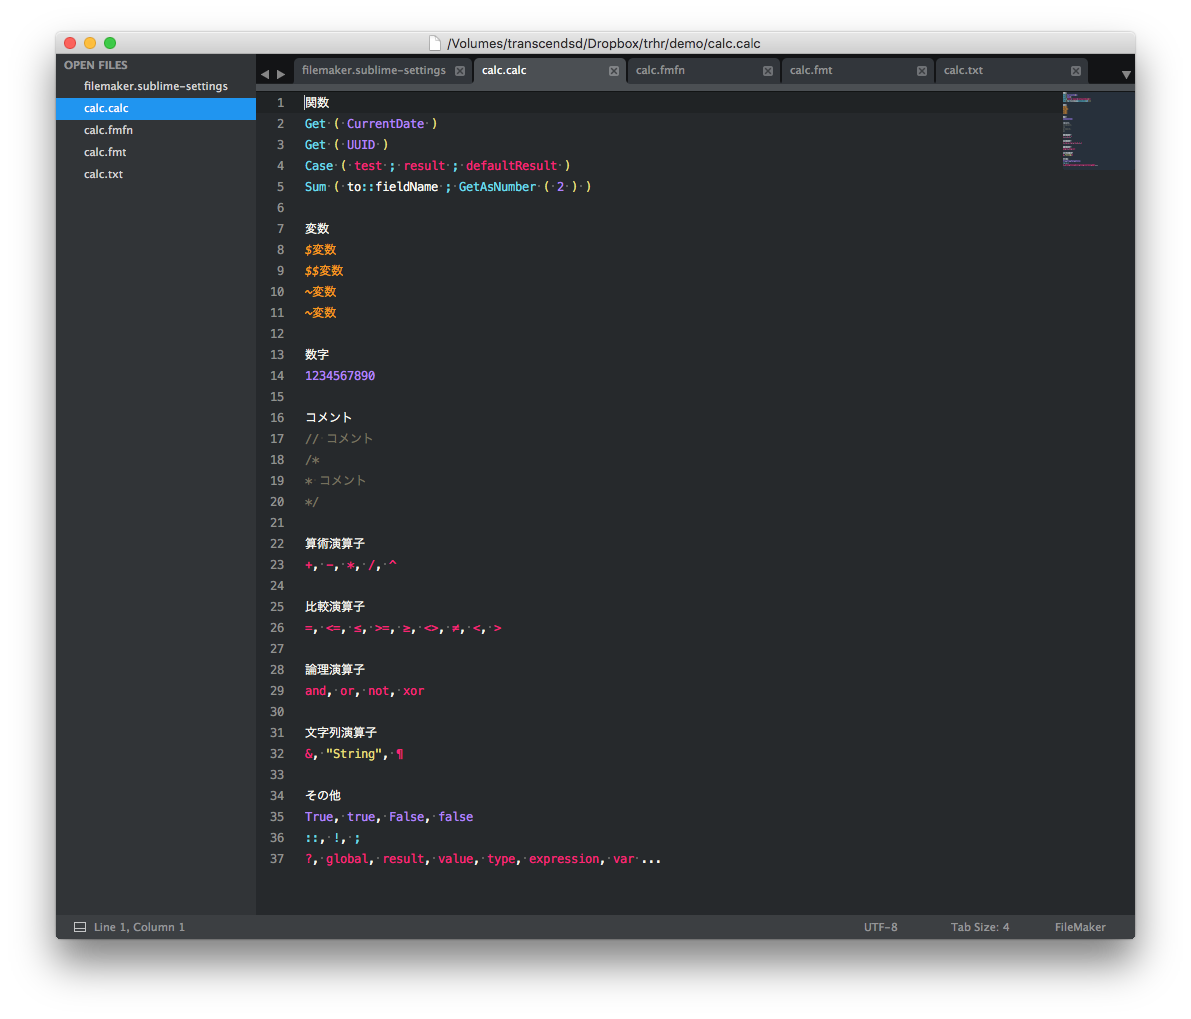 sublime-text-filemaker-syntax